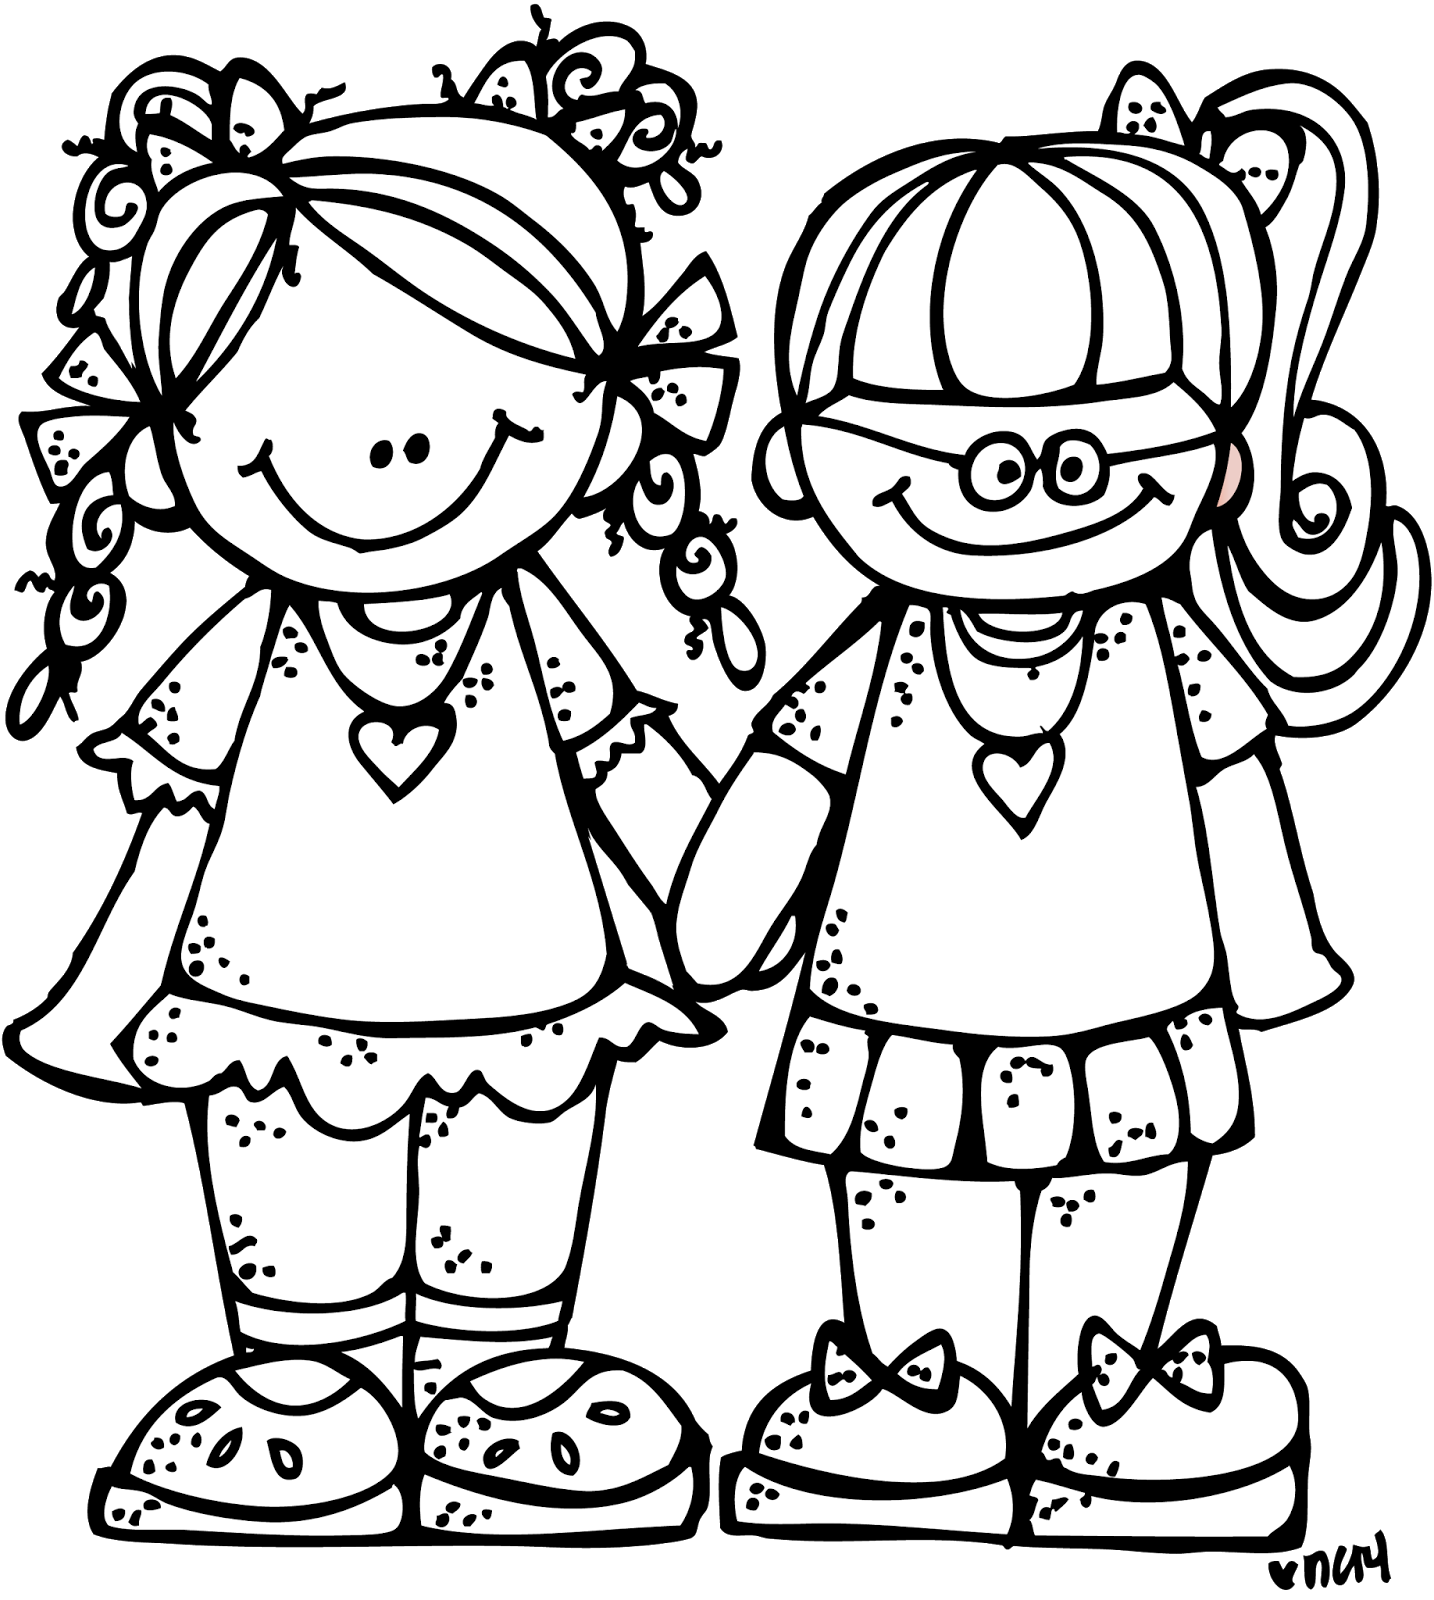 Melonheadz school clipart black and white vector free Melonheadz Illustrating Freebie Forever Friends Graphic :) | Melon ... vector free